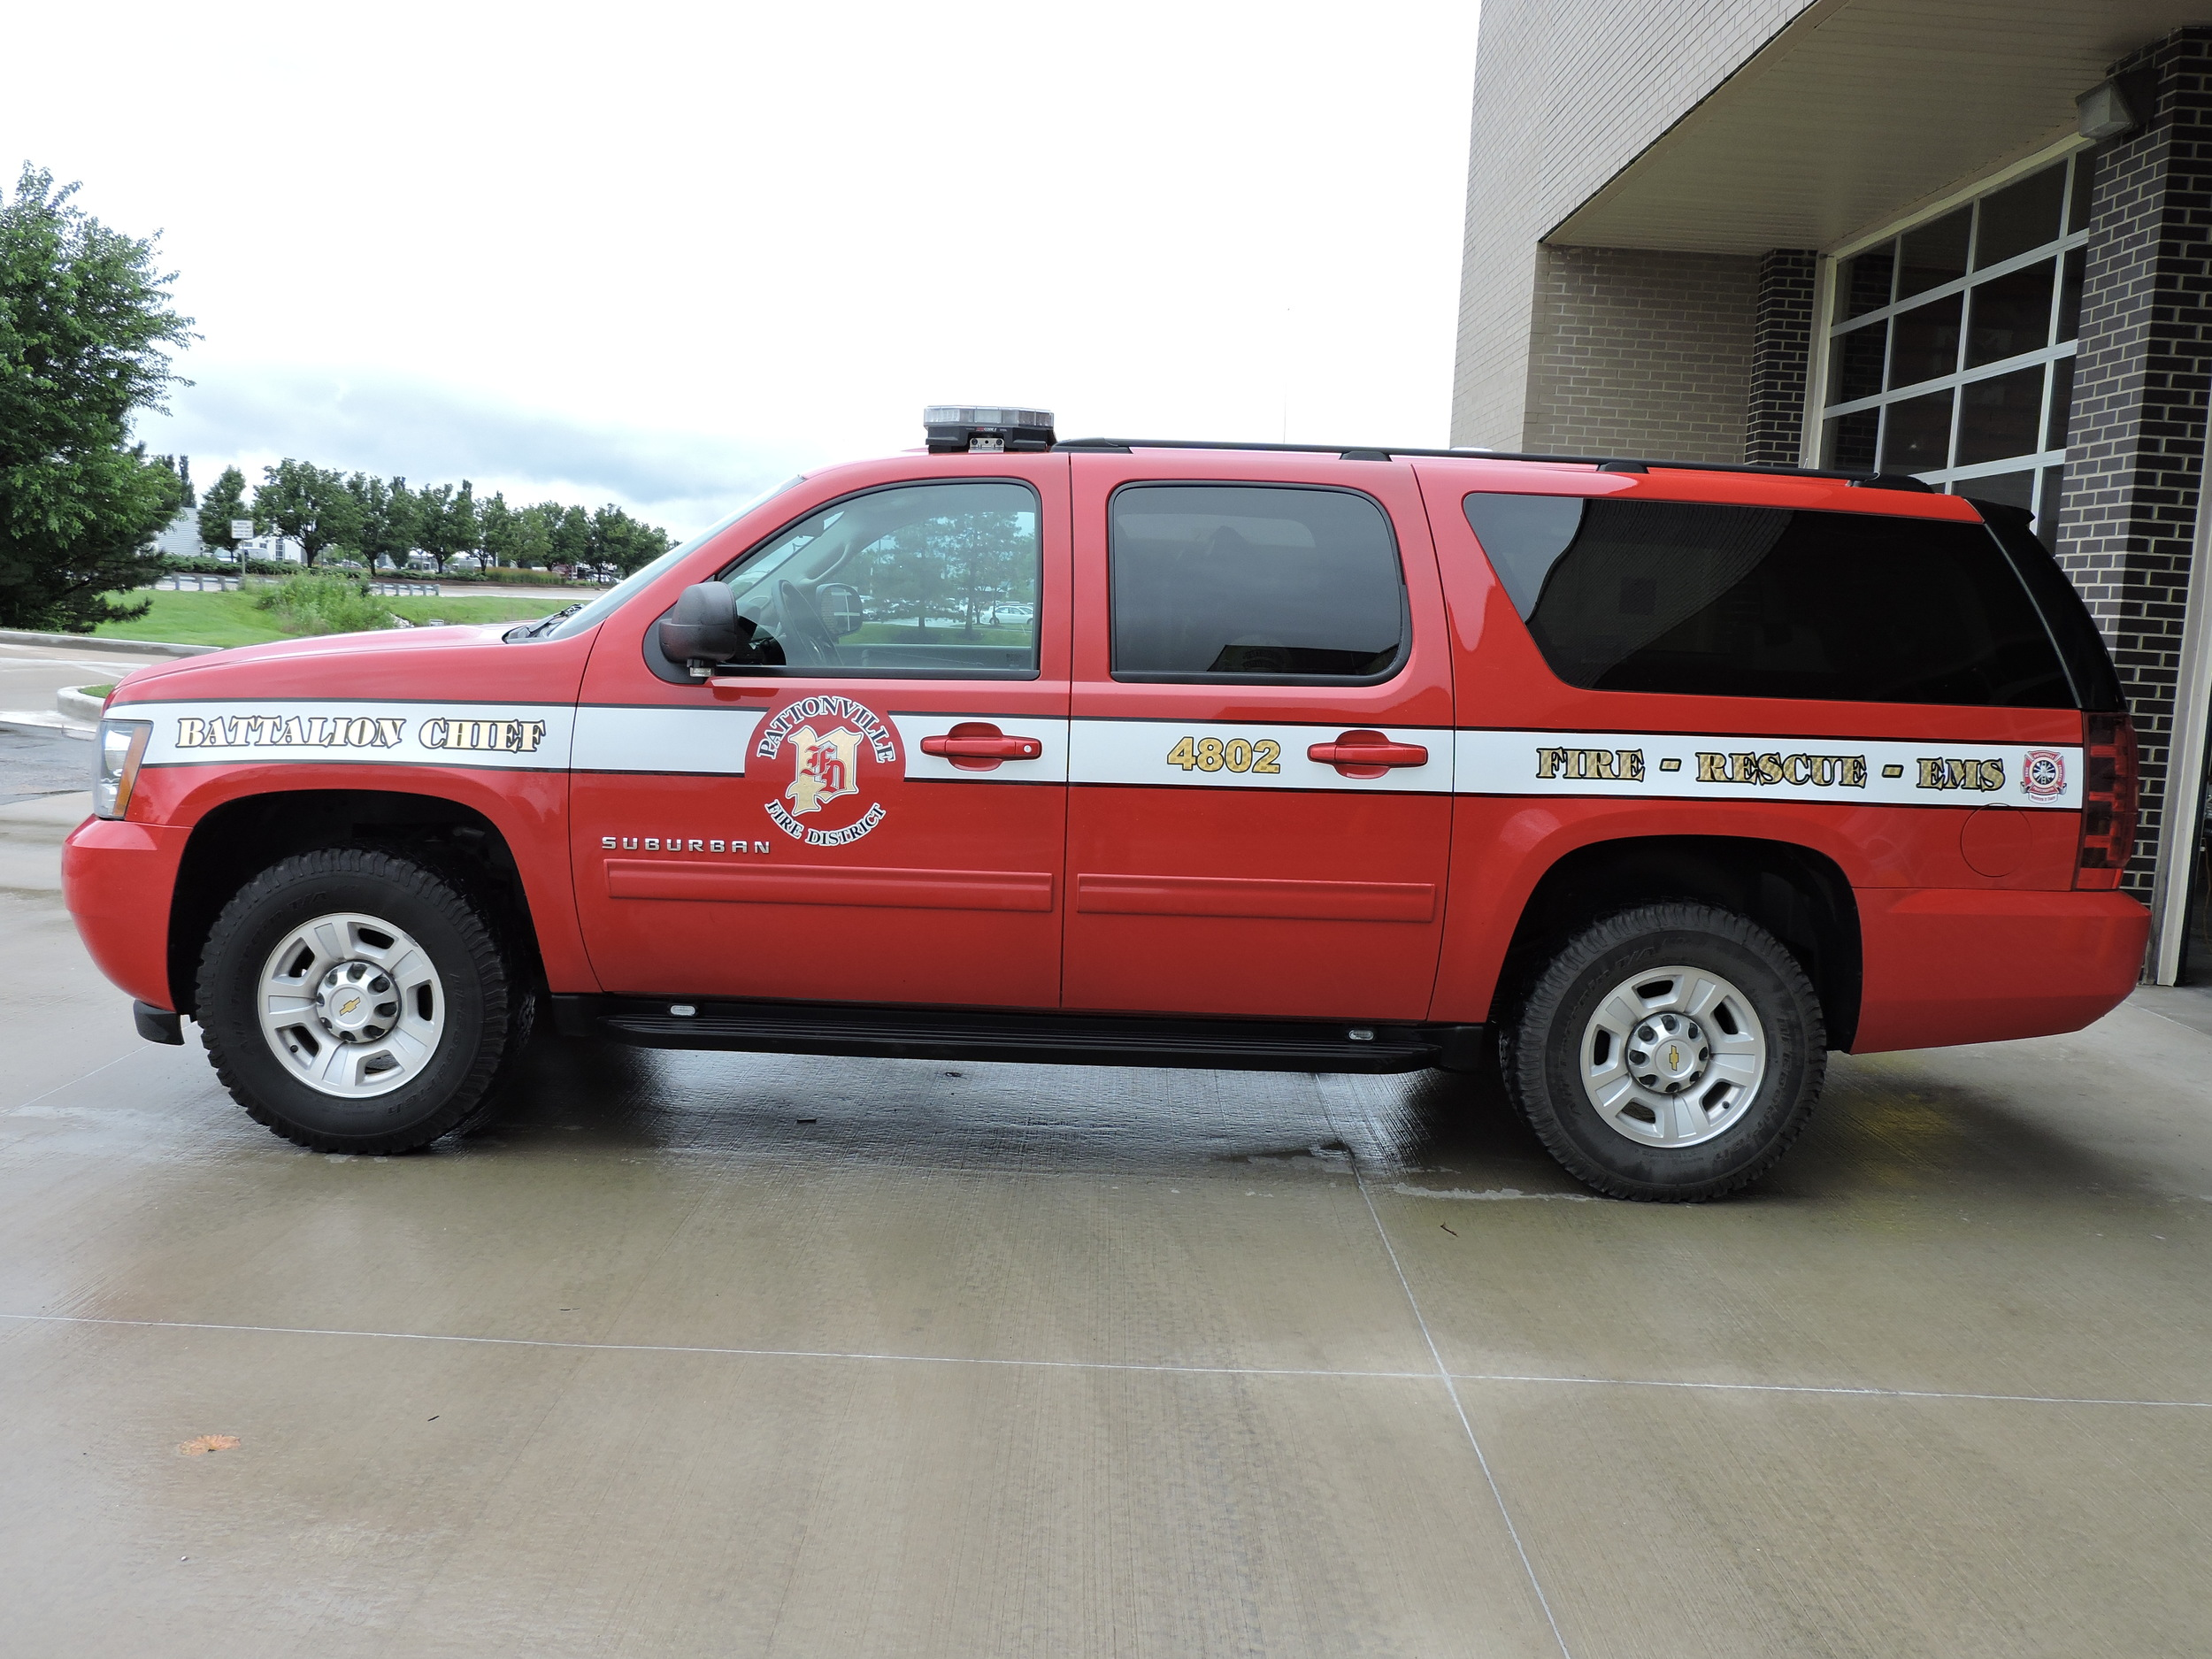 Equipment Gallery Pattonville Fire Protection District